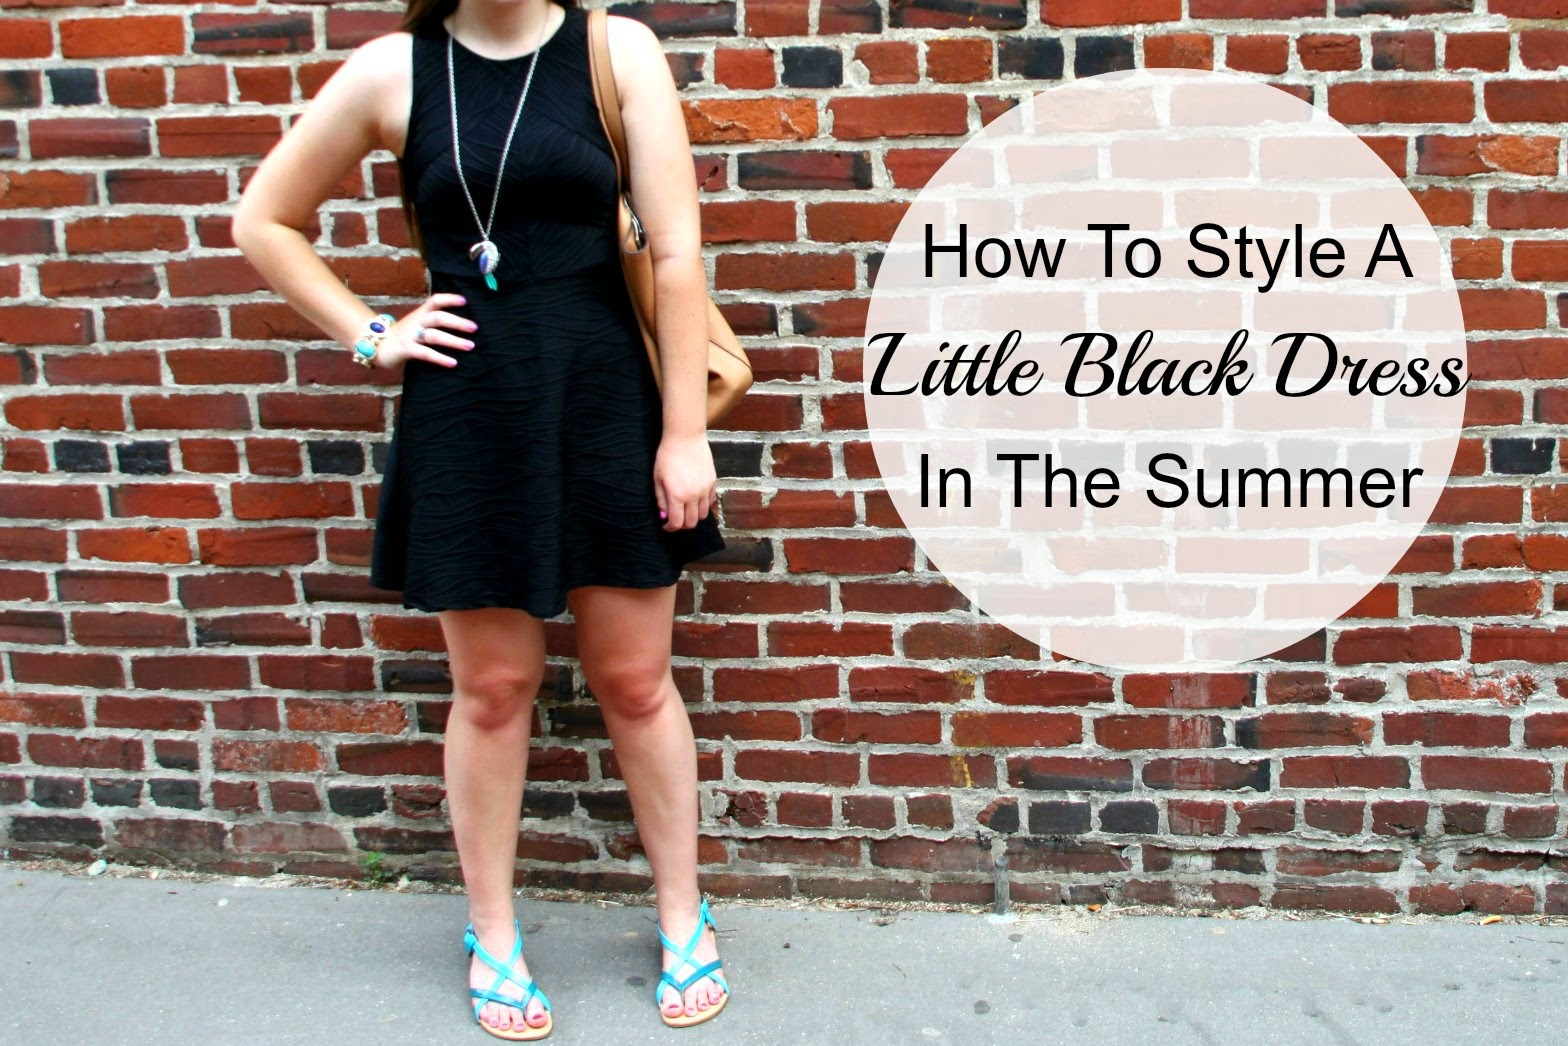 How To Style A LBD In The Summer